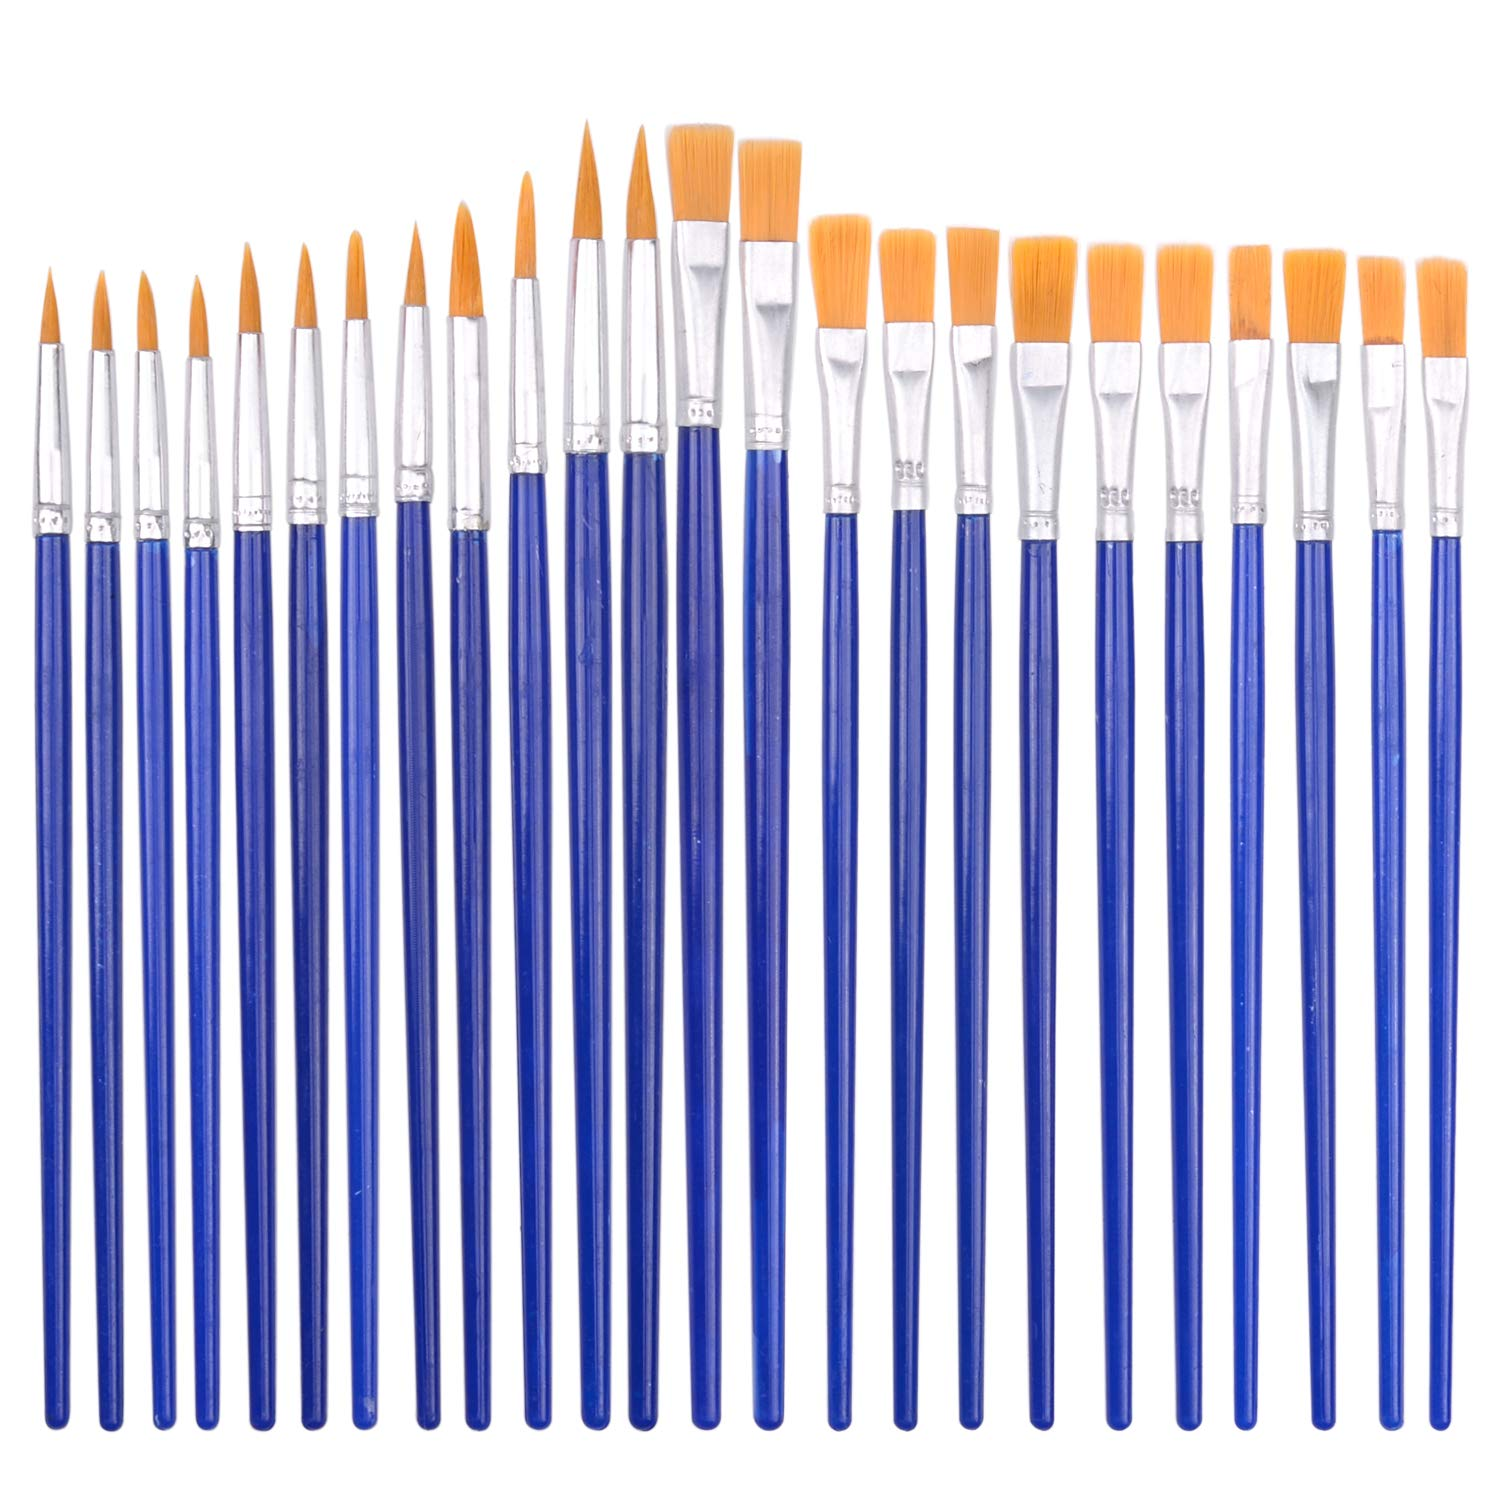 24 pcs Paint Brushes for Kids Painting